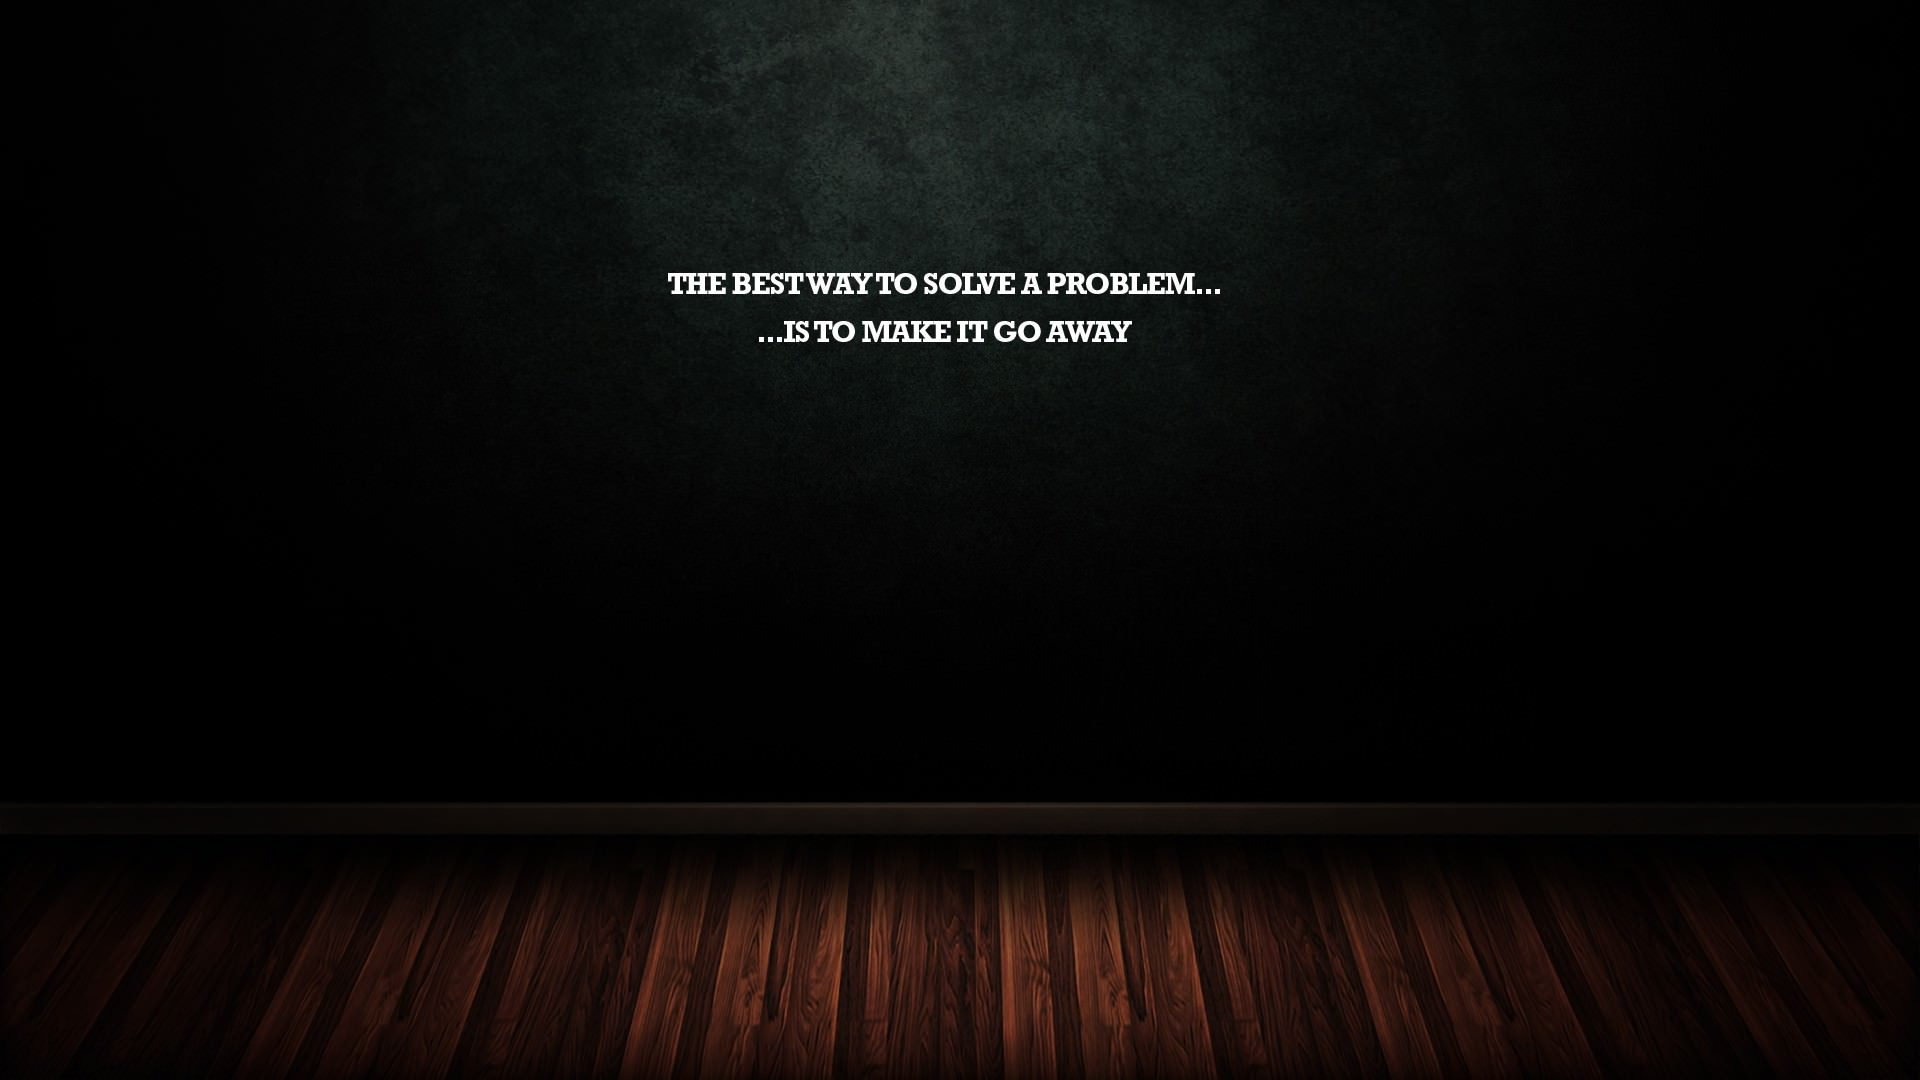 Res: 1920x1080, 35 Inspirational Typography HD Wallpapers for Desktop, iPhone and Android